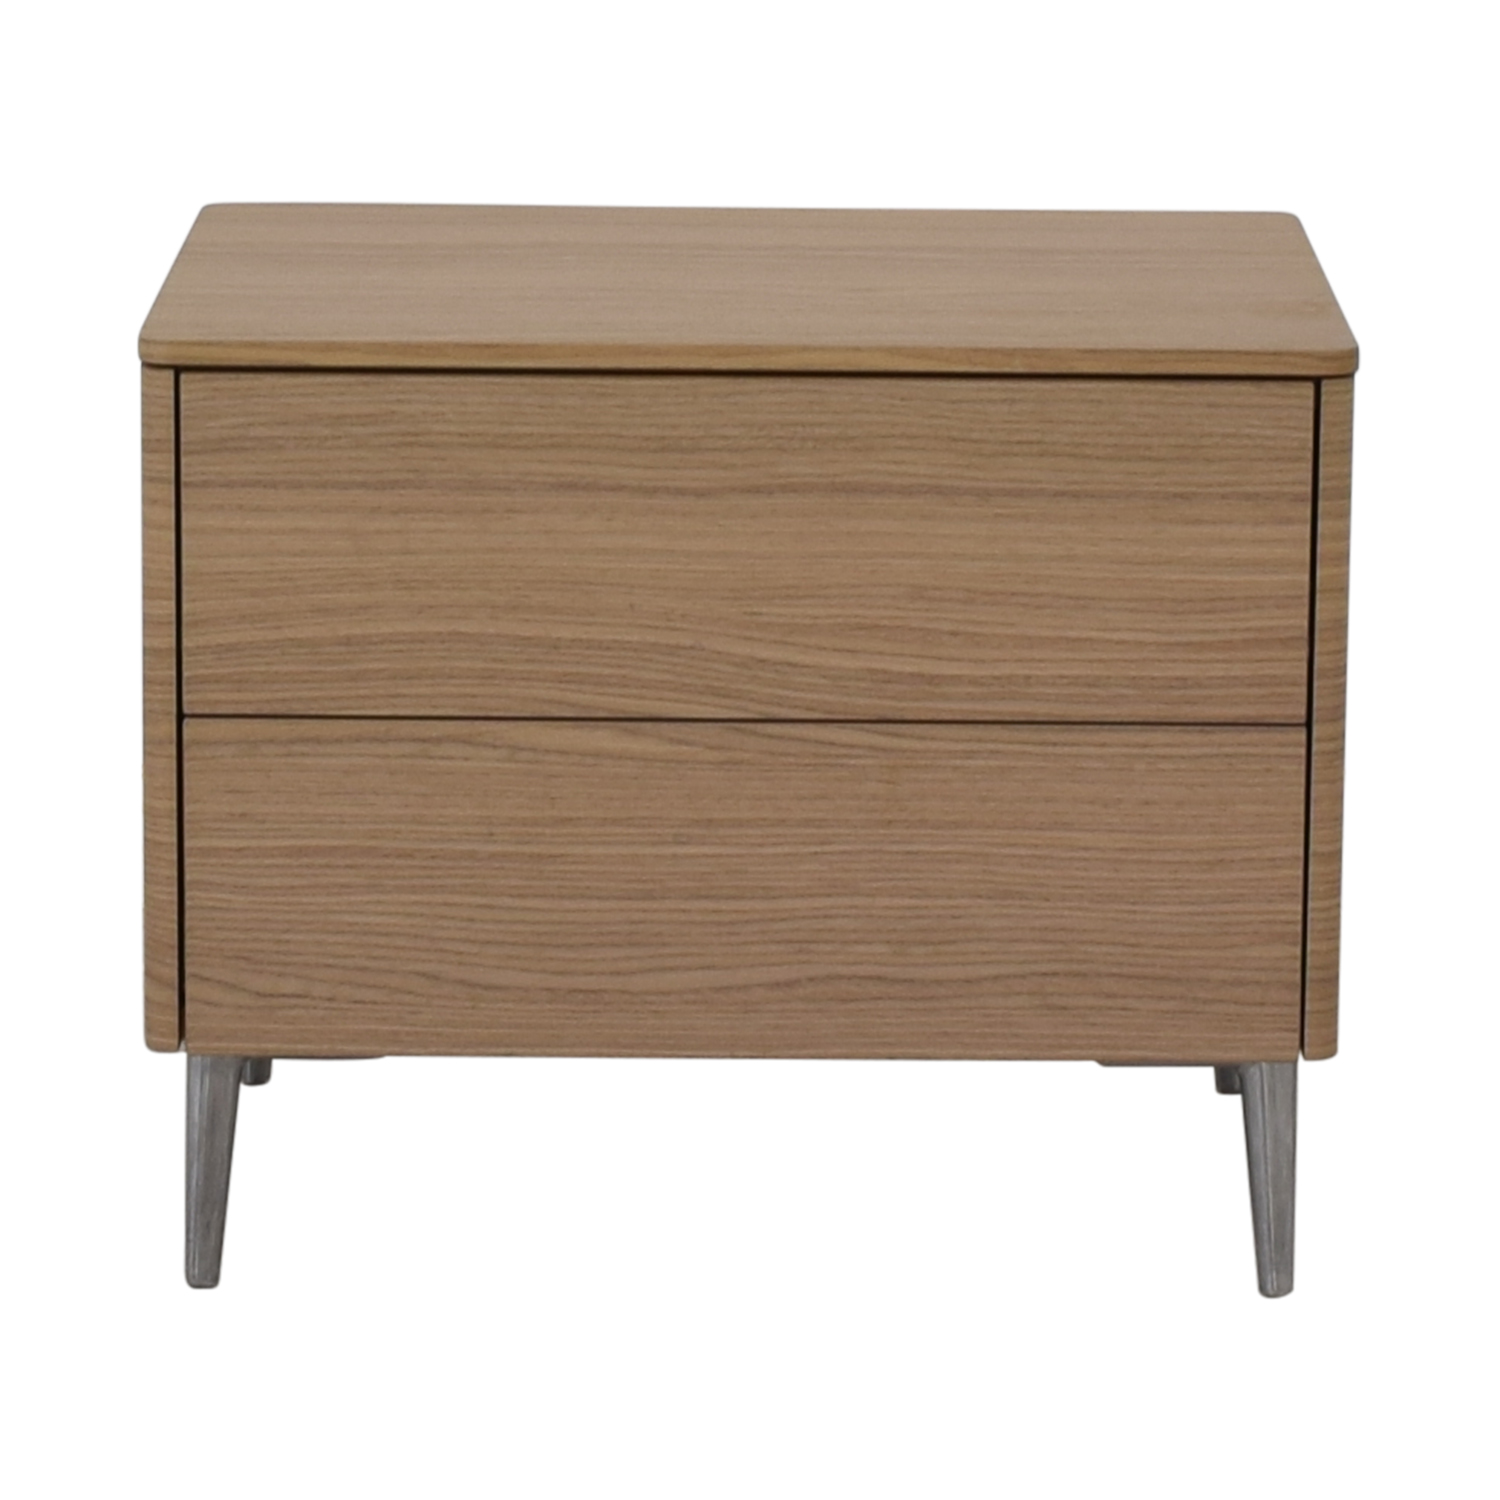 Calligaris Calligaris Boston Two Drawer Nightstand nyc